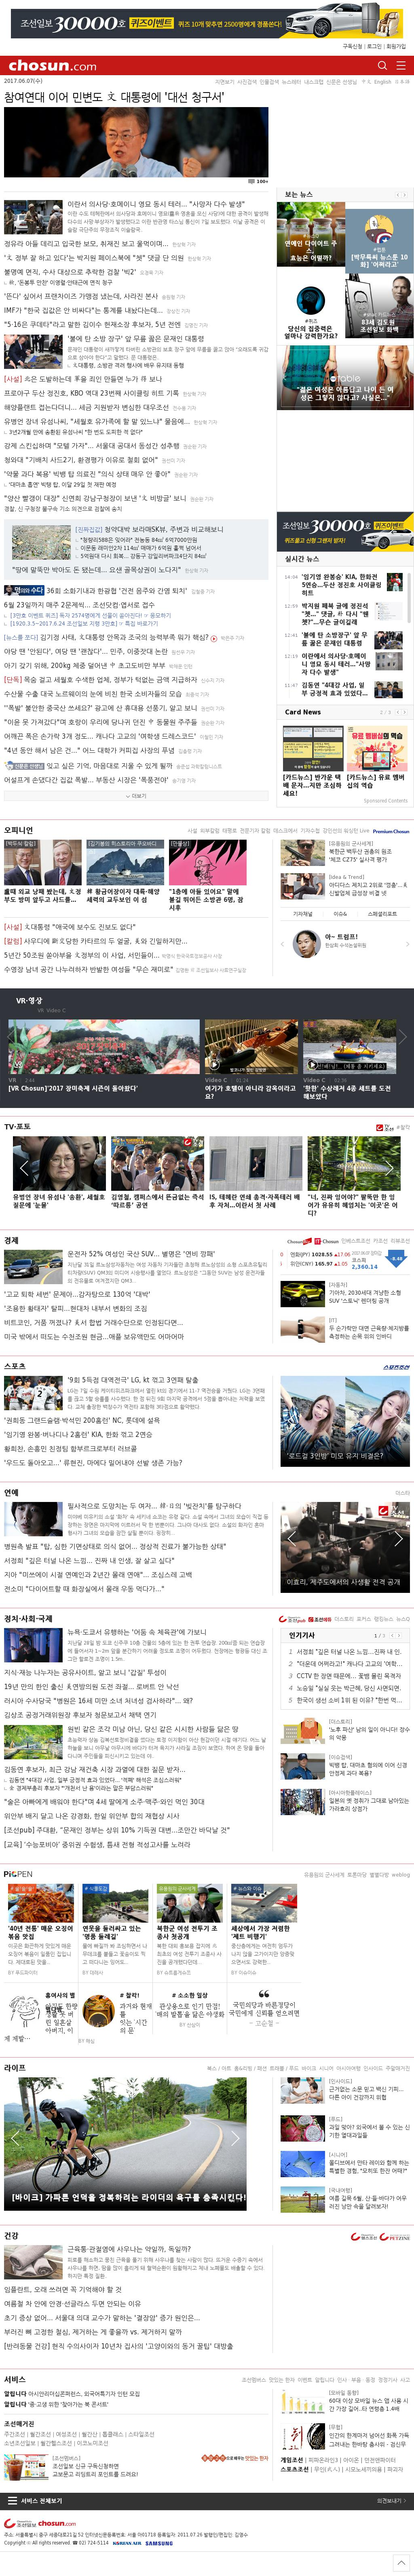 chosun.com at Wednesday June 7, 2017, 2:05 p.m. UTC